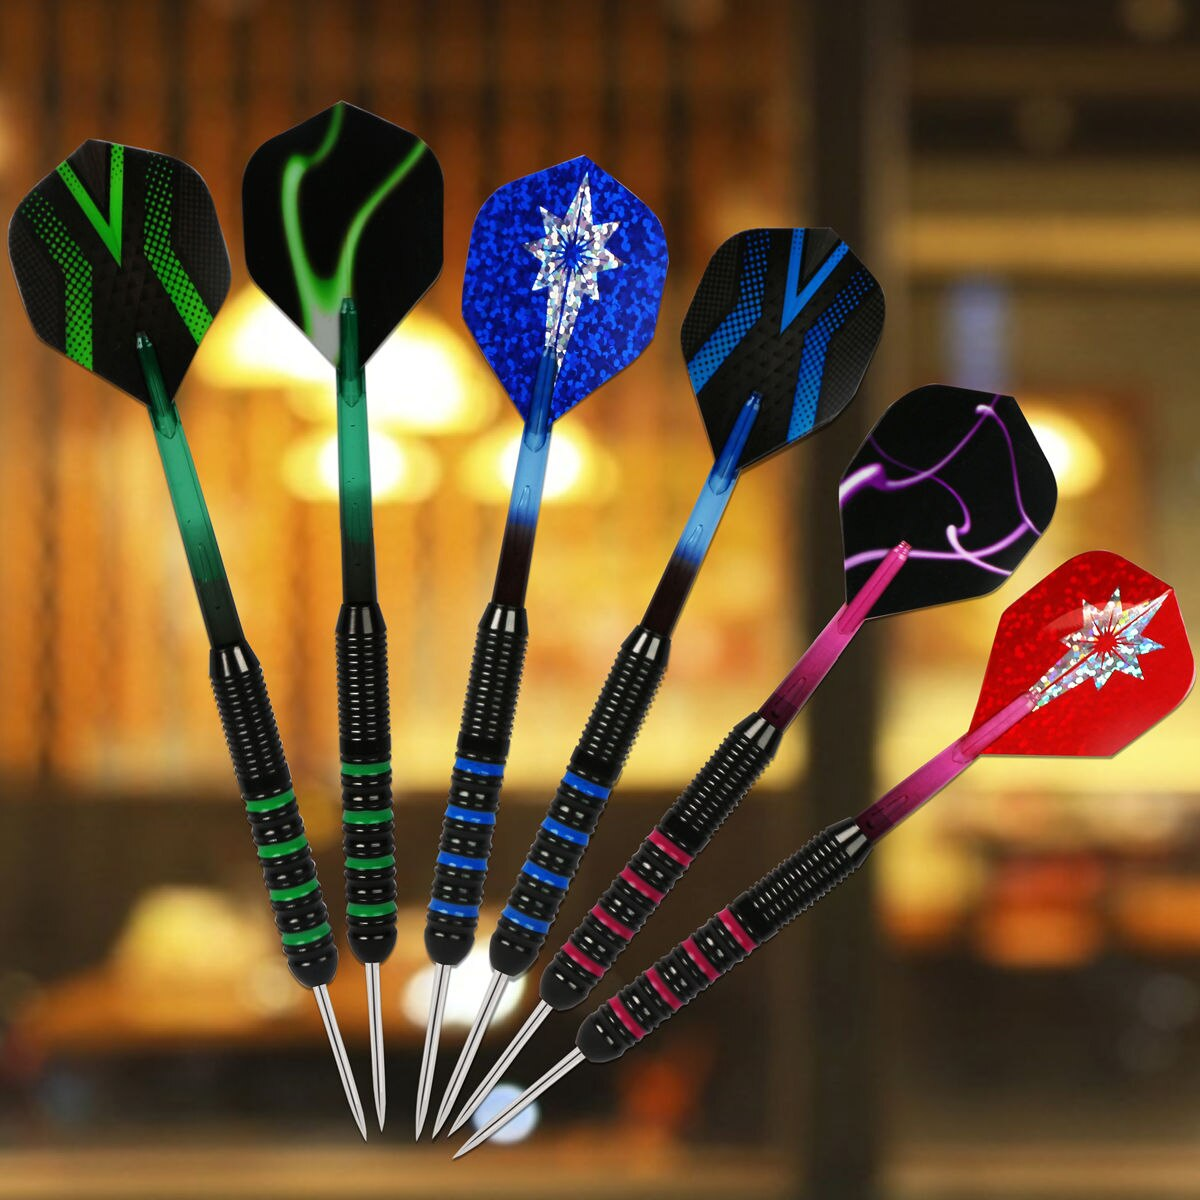 20g Hard Dart Professional Game Metal Needle Tip Indoor Sports Fitness Leisure Game Special for Paper Target